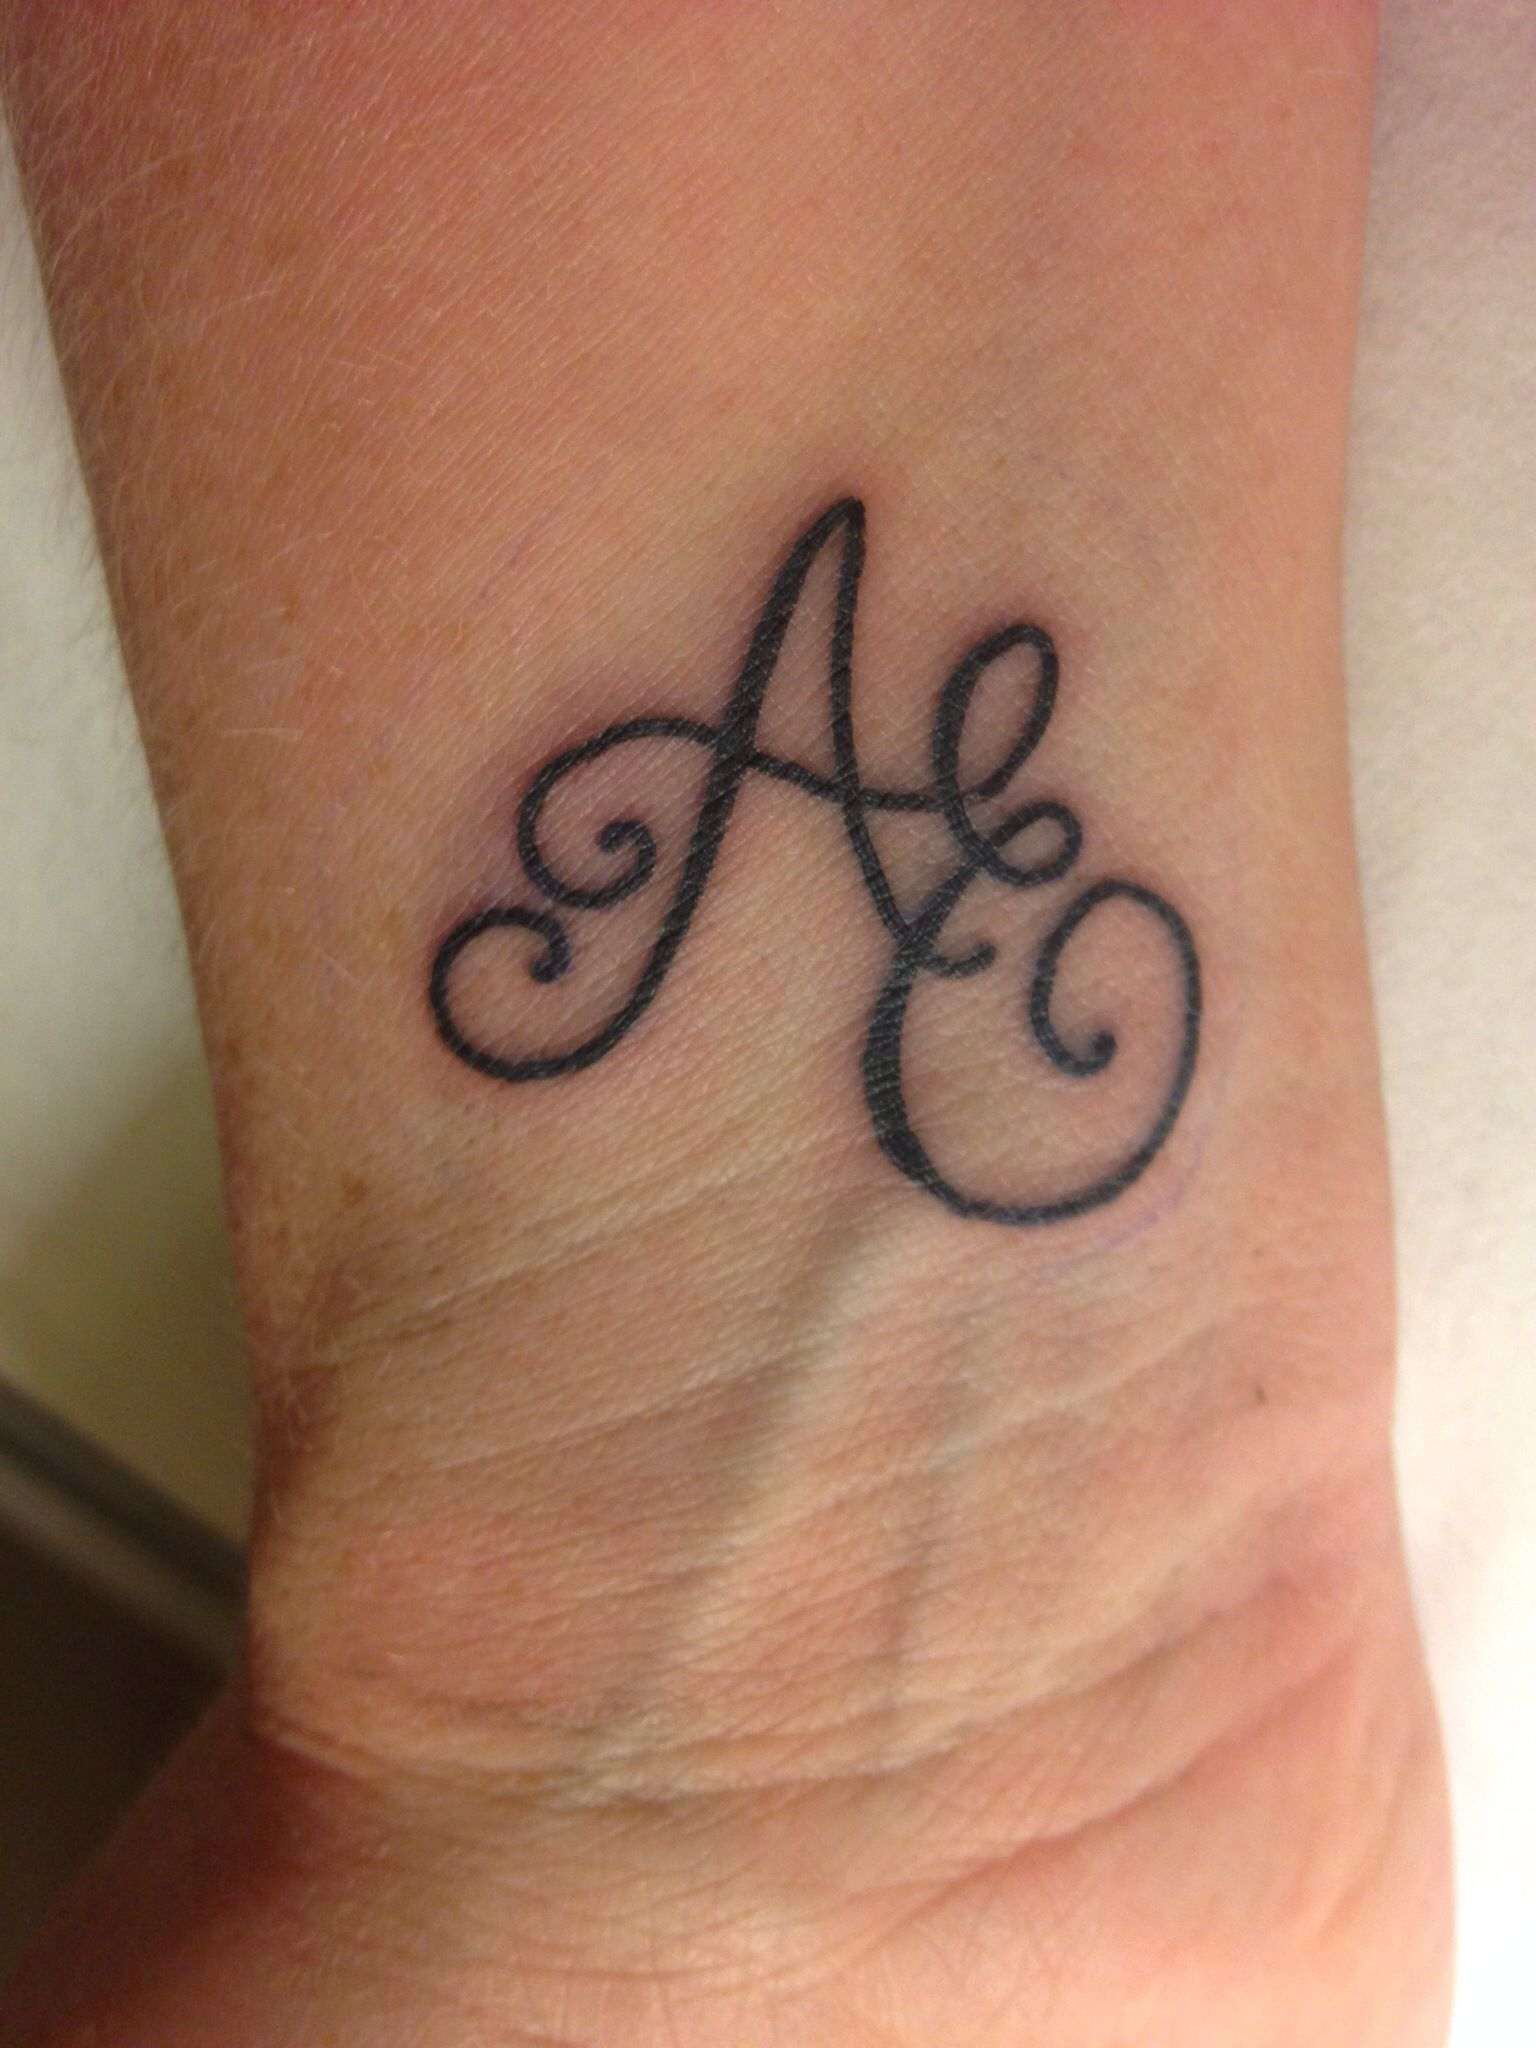 P And A Initial Tattoos - Google Search